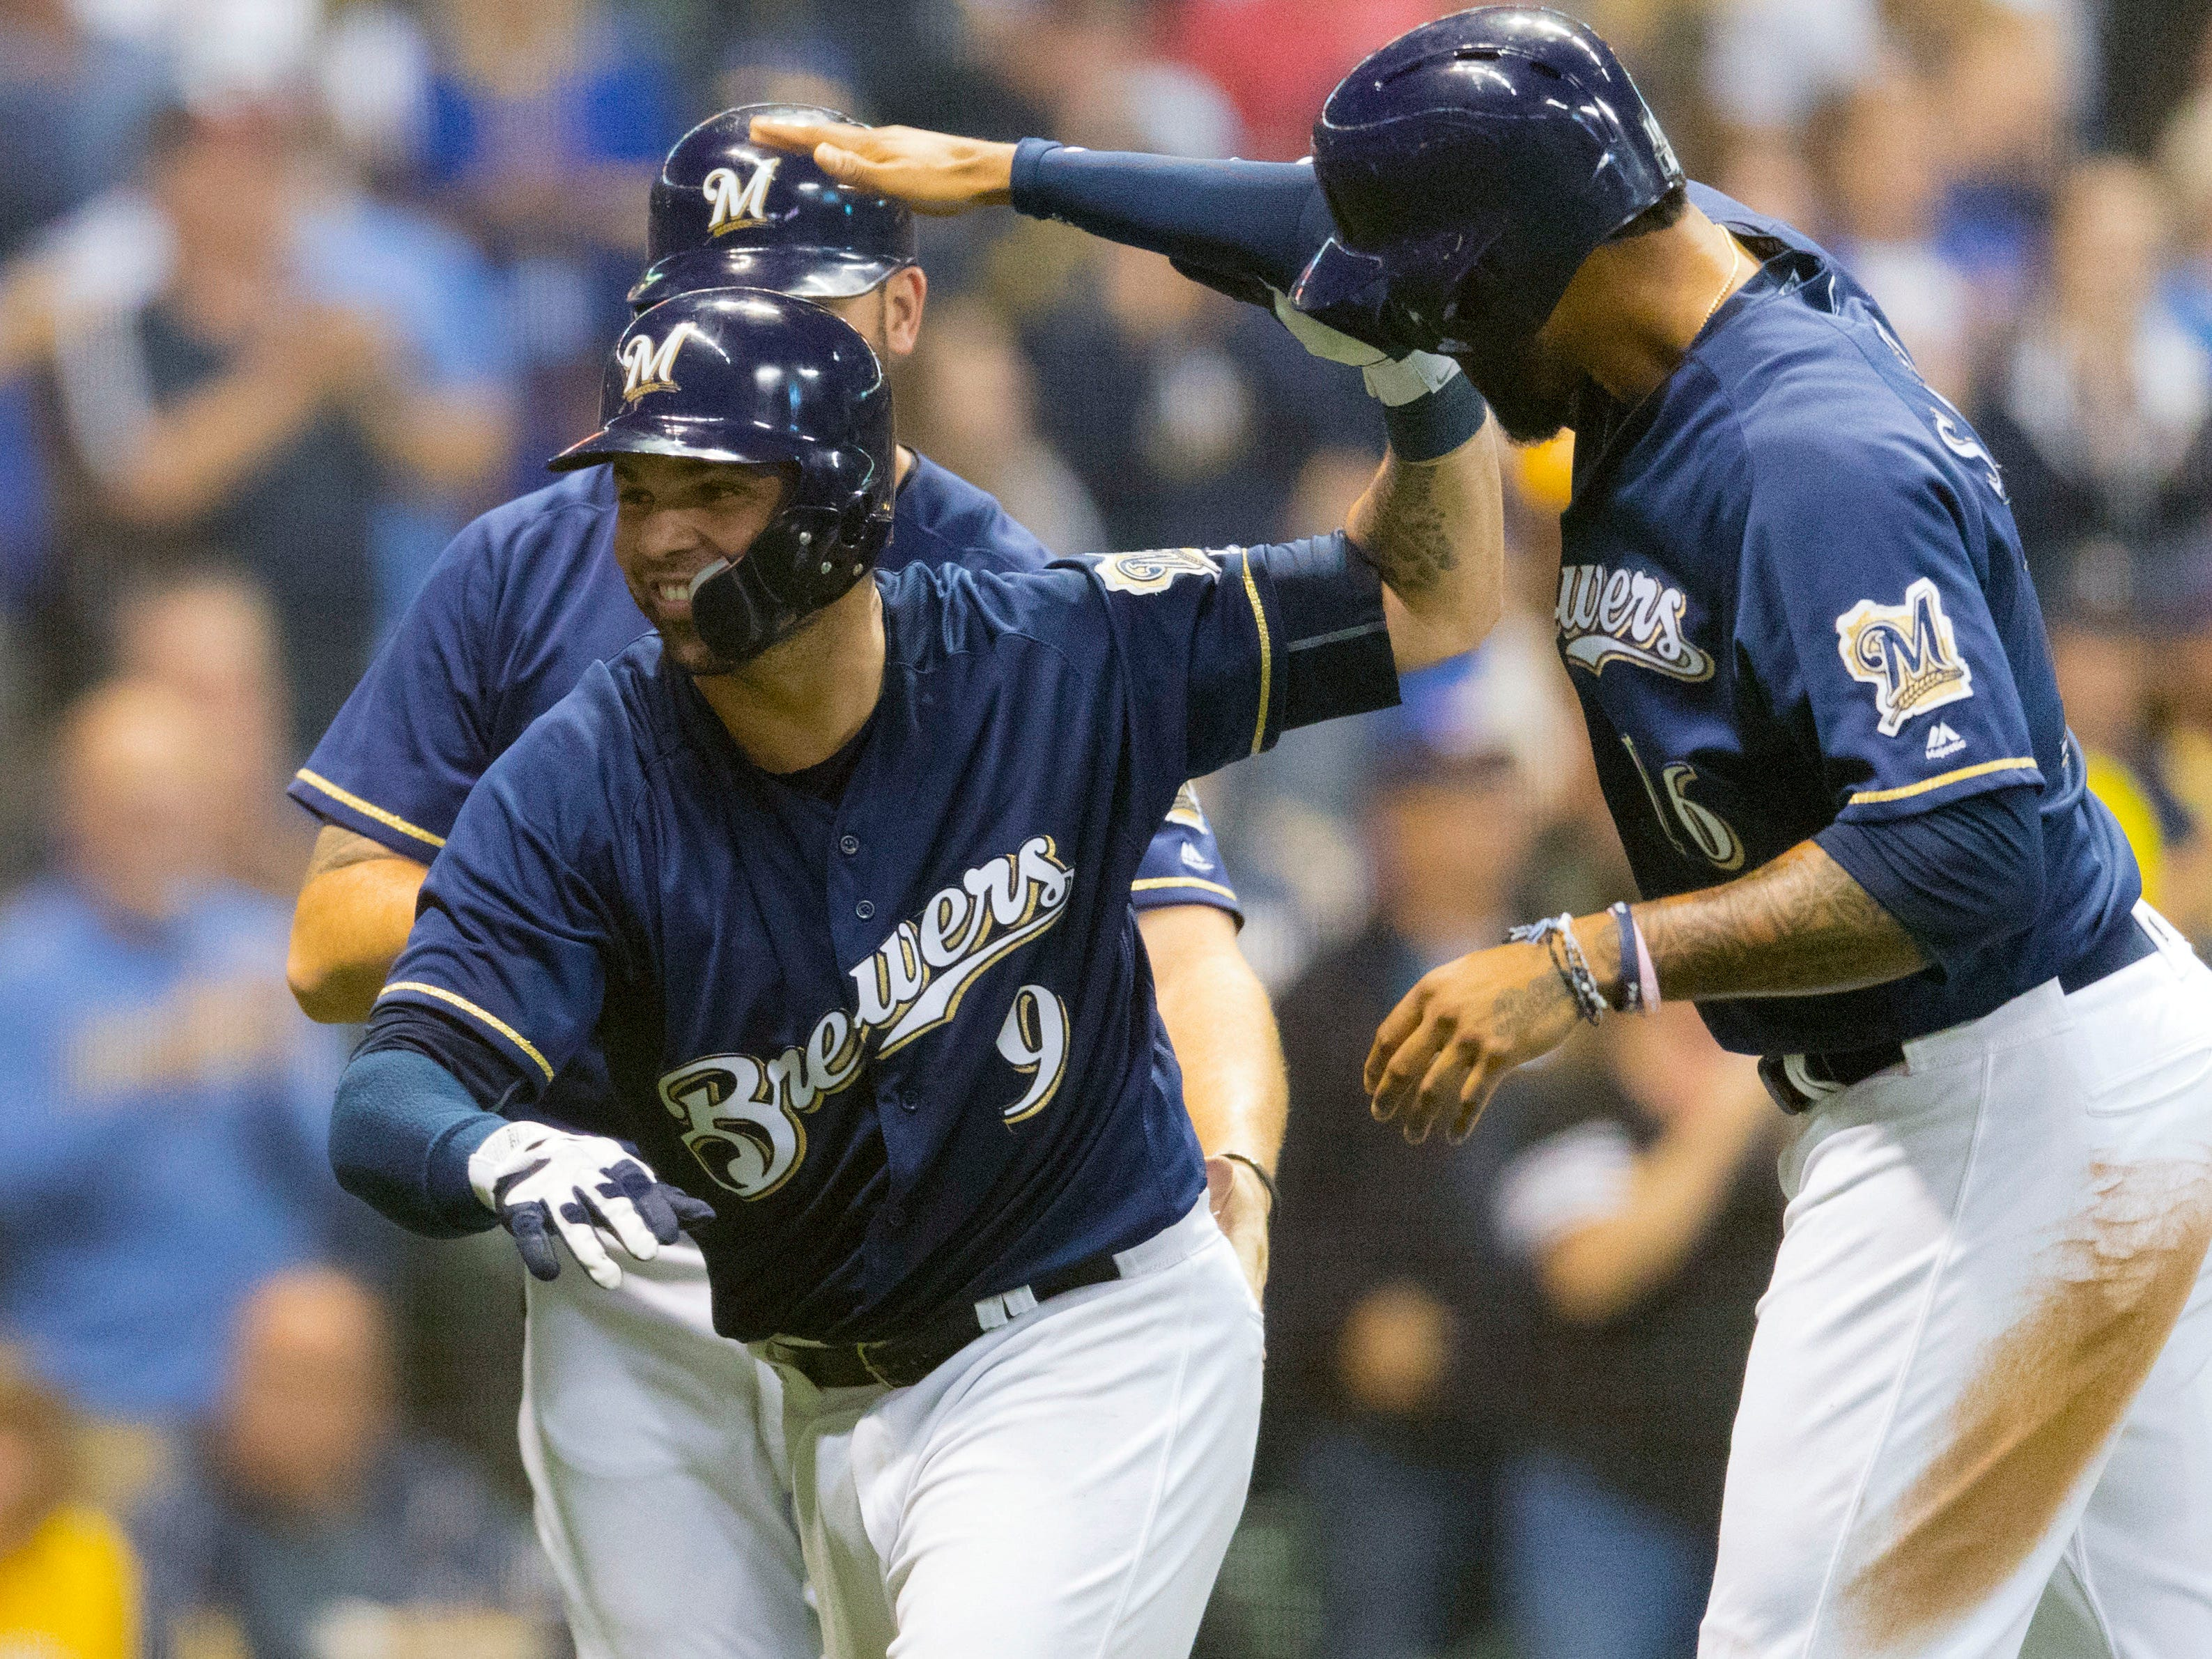 Manny Pina is congratulated by Domingo Santana (right) and Mike Moustakas after his three-run jolt against the Reds on Wednesday night.